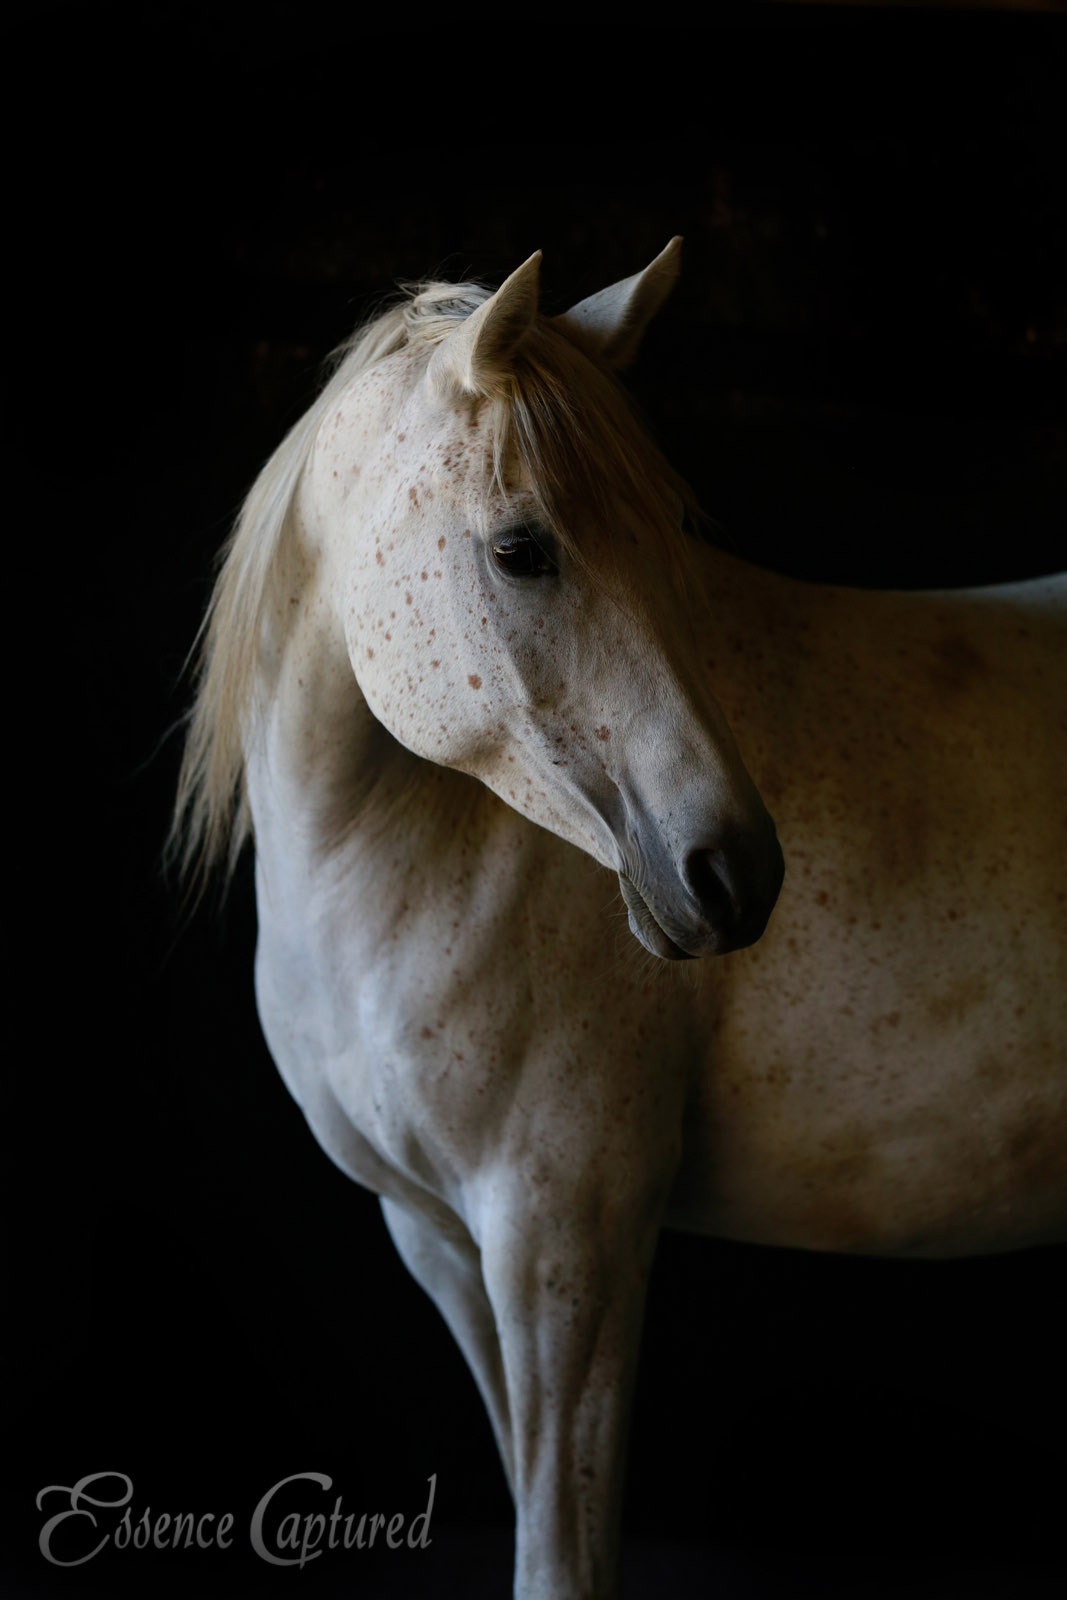 Shalla portrait of white horse with freckles daughter of Spirit